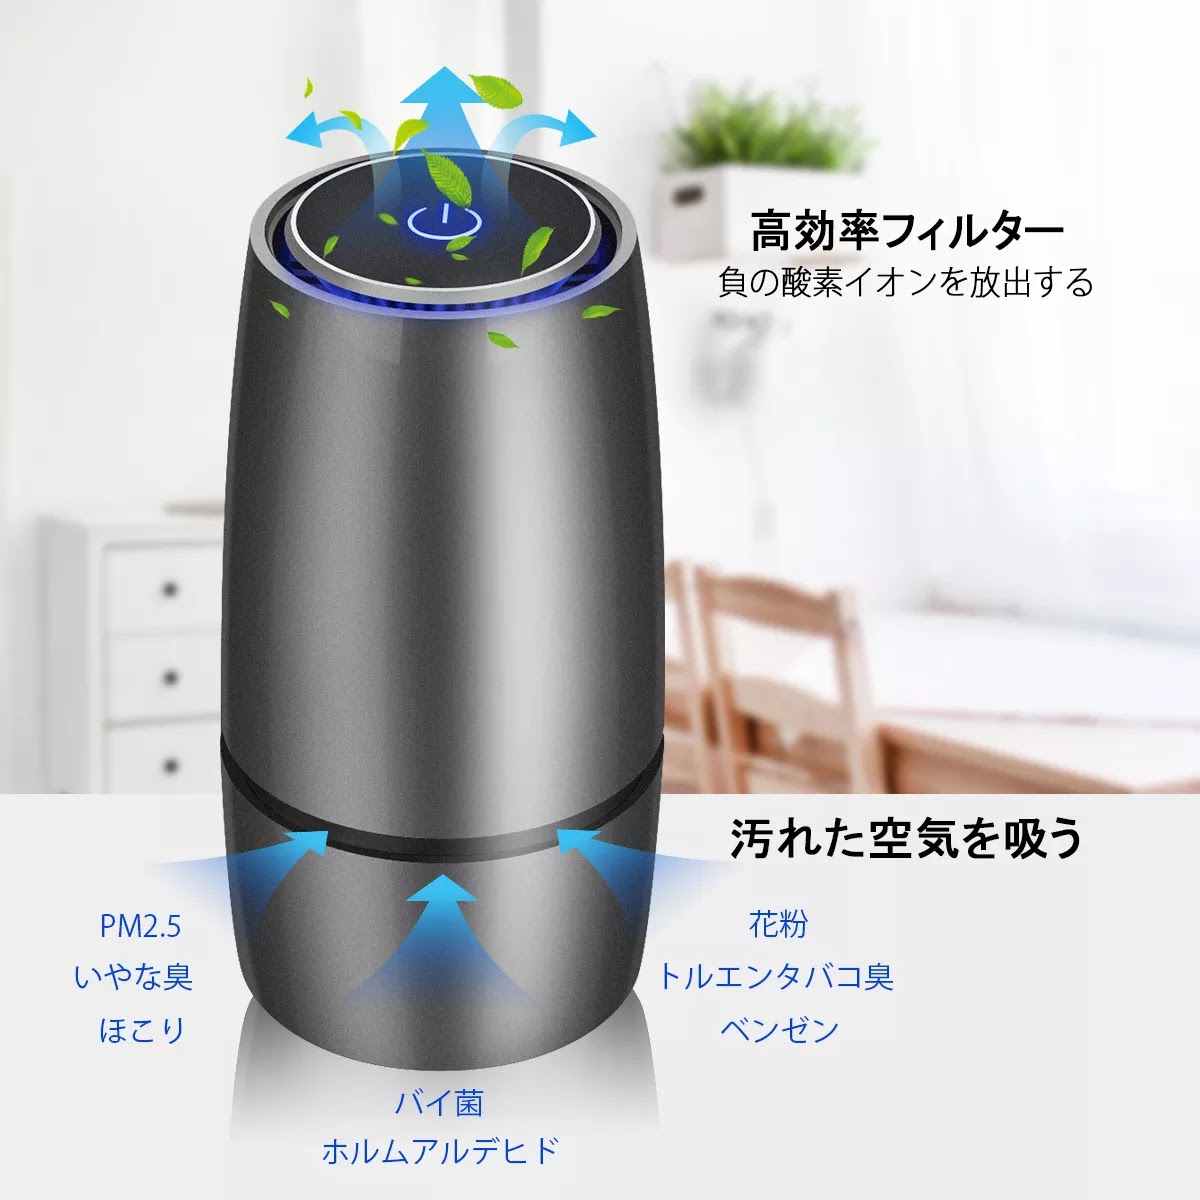 effef3999 Negative Ion Car Air Purifier Portable Air Cleaner with USB Ports Air  Filter Freshener for Baby